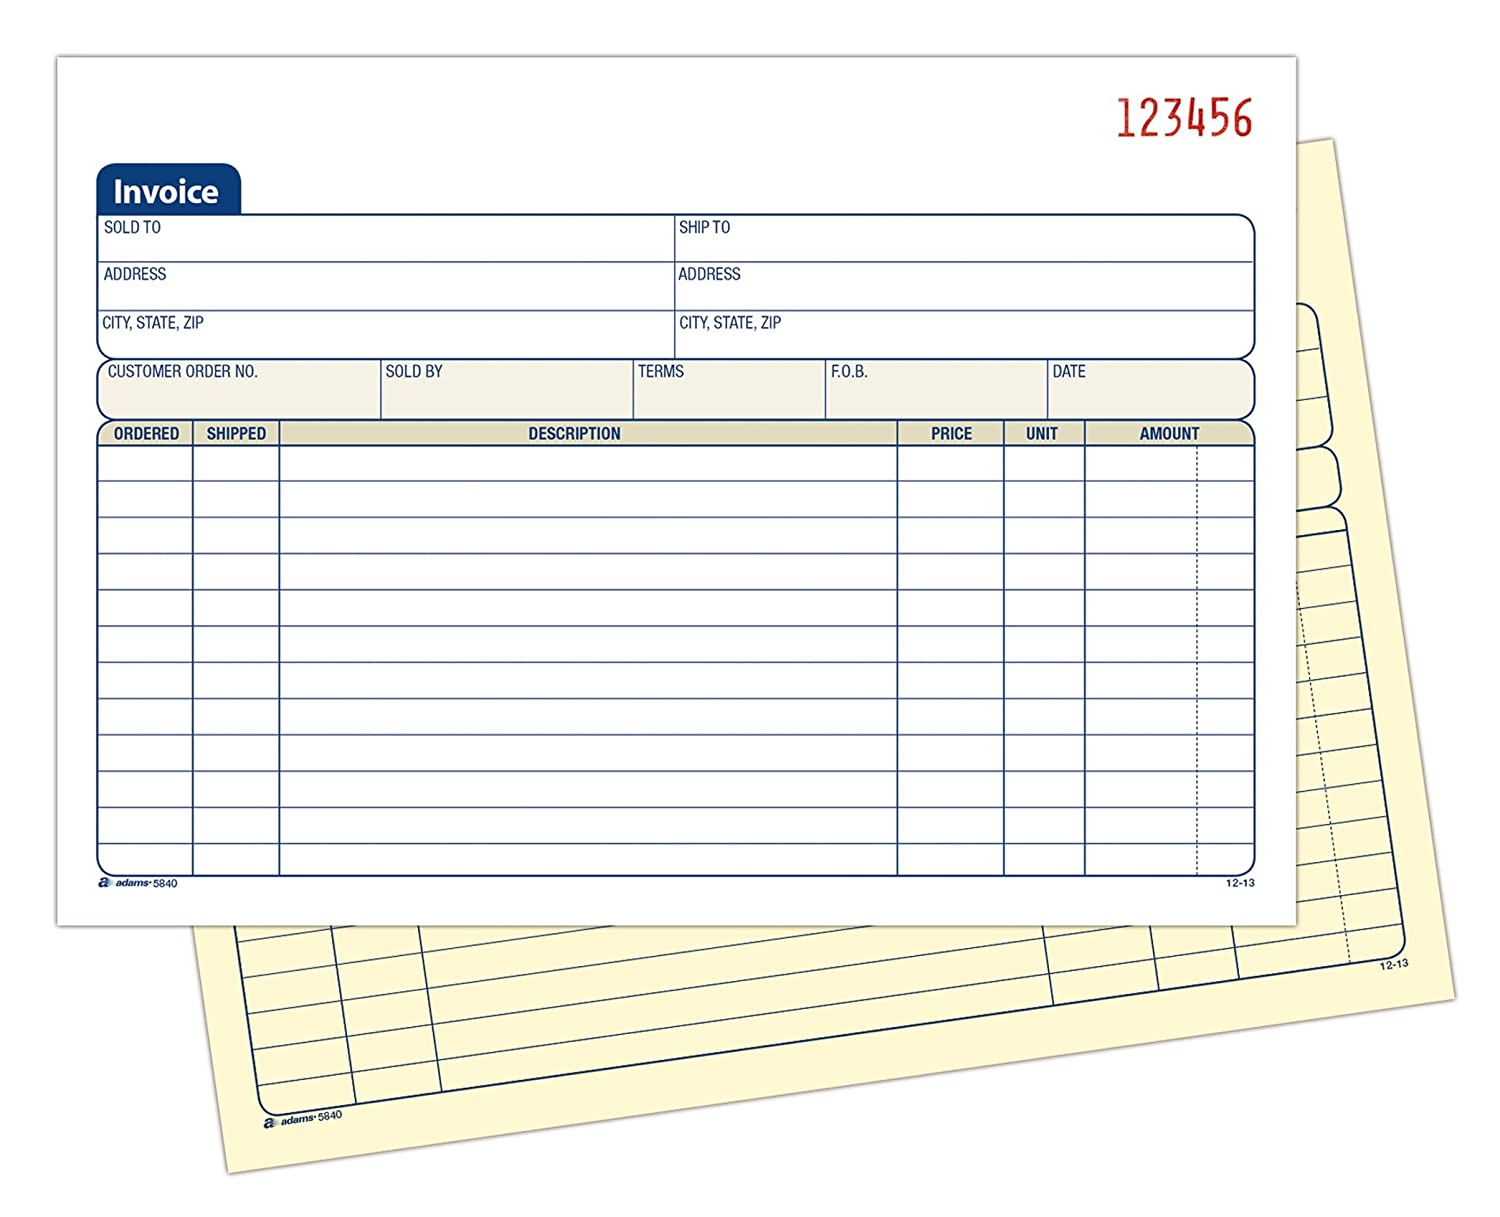 Sales Forms Invoice Forms Amazoncom Office School Supplies - Download free invoice template online fabric store coupon